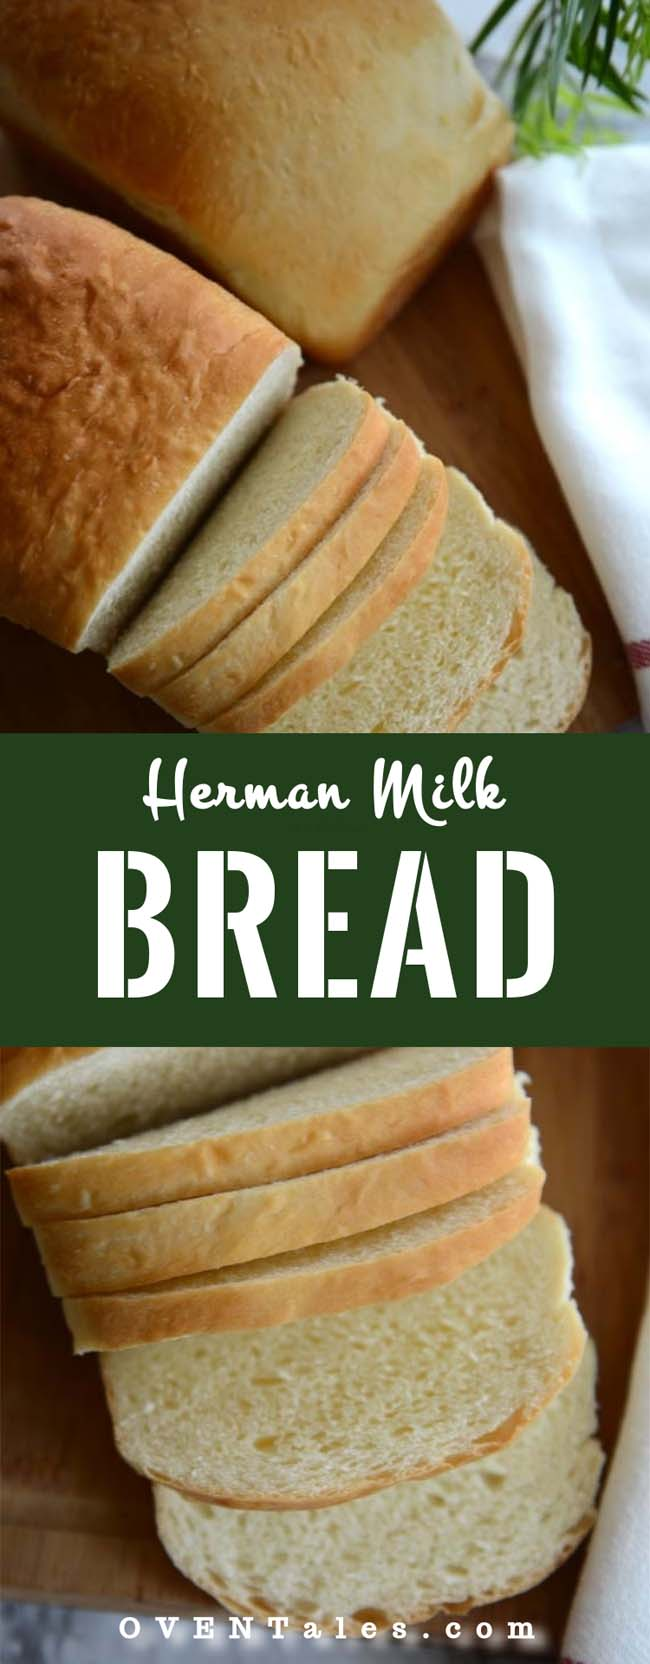 Herman Milk Bread - Pinnable image